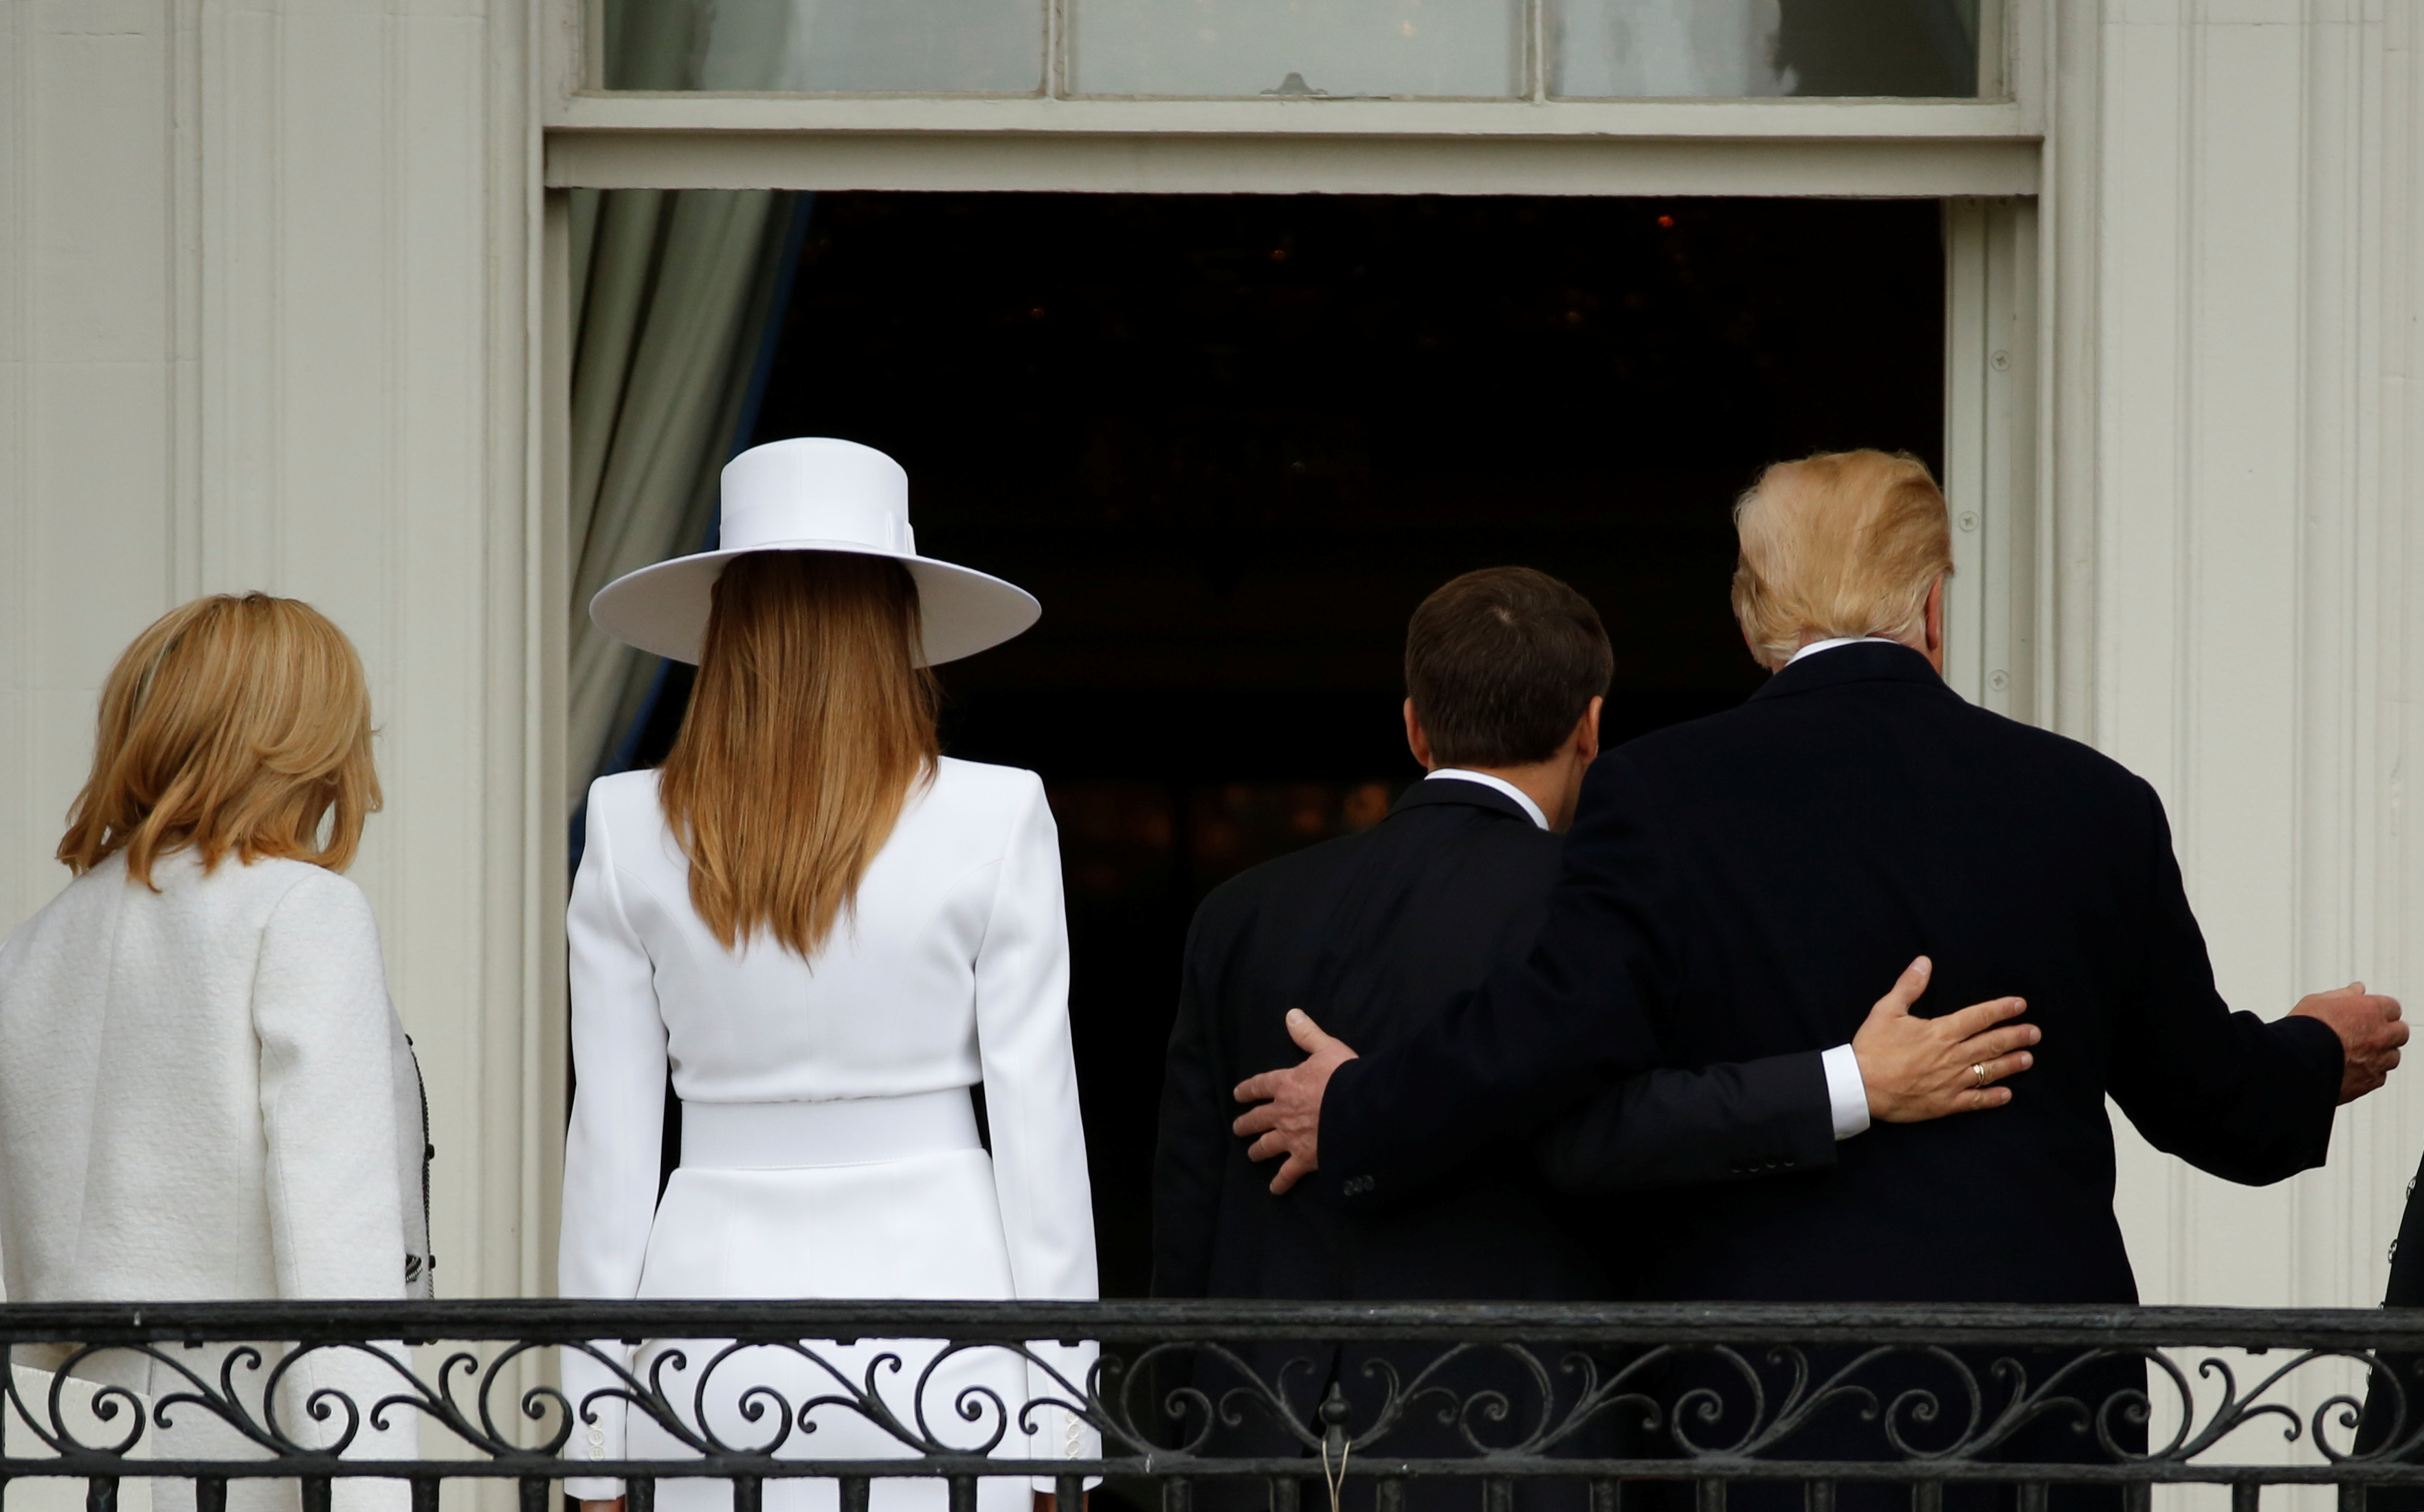 U.S. President Donald Trump and first lady Melania Trump welcome French President Emmanuel Macron and his wife Brigitte Macron during an arrival ceremony at the White House in Washington